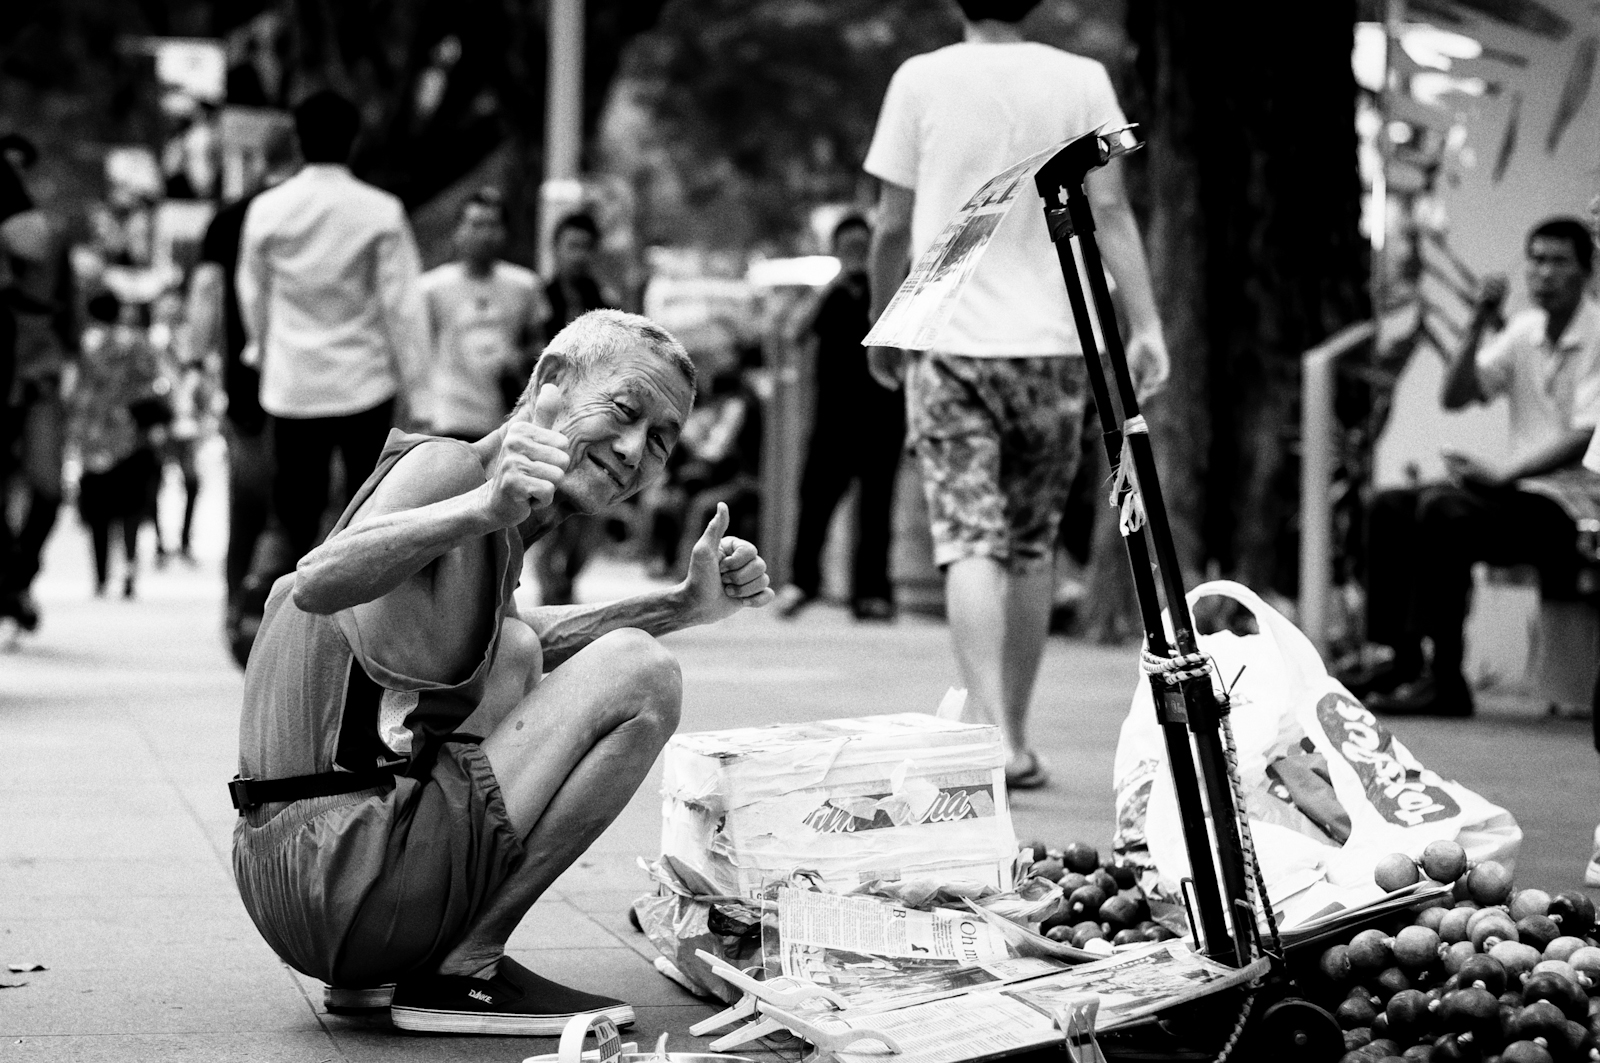 Street photography - street performer in Orchard Road